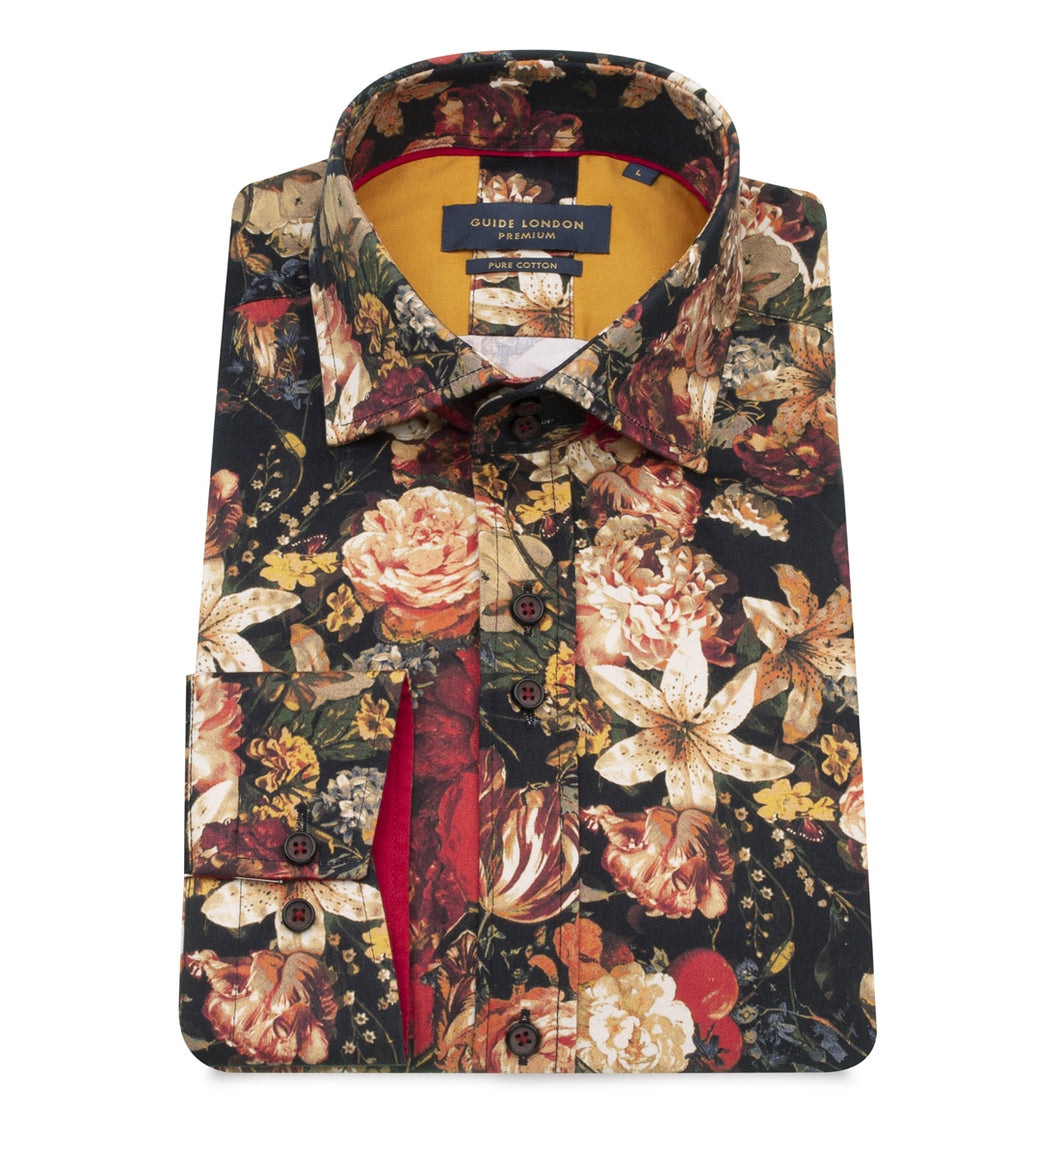 Guide London Deep Floral Print Shirt Burgundy